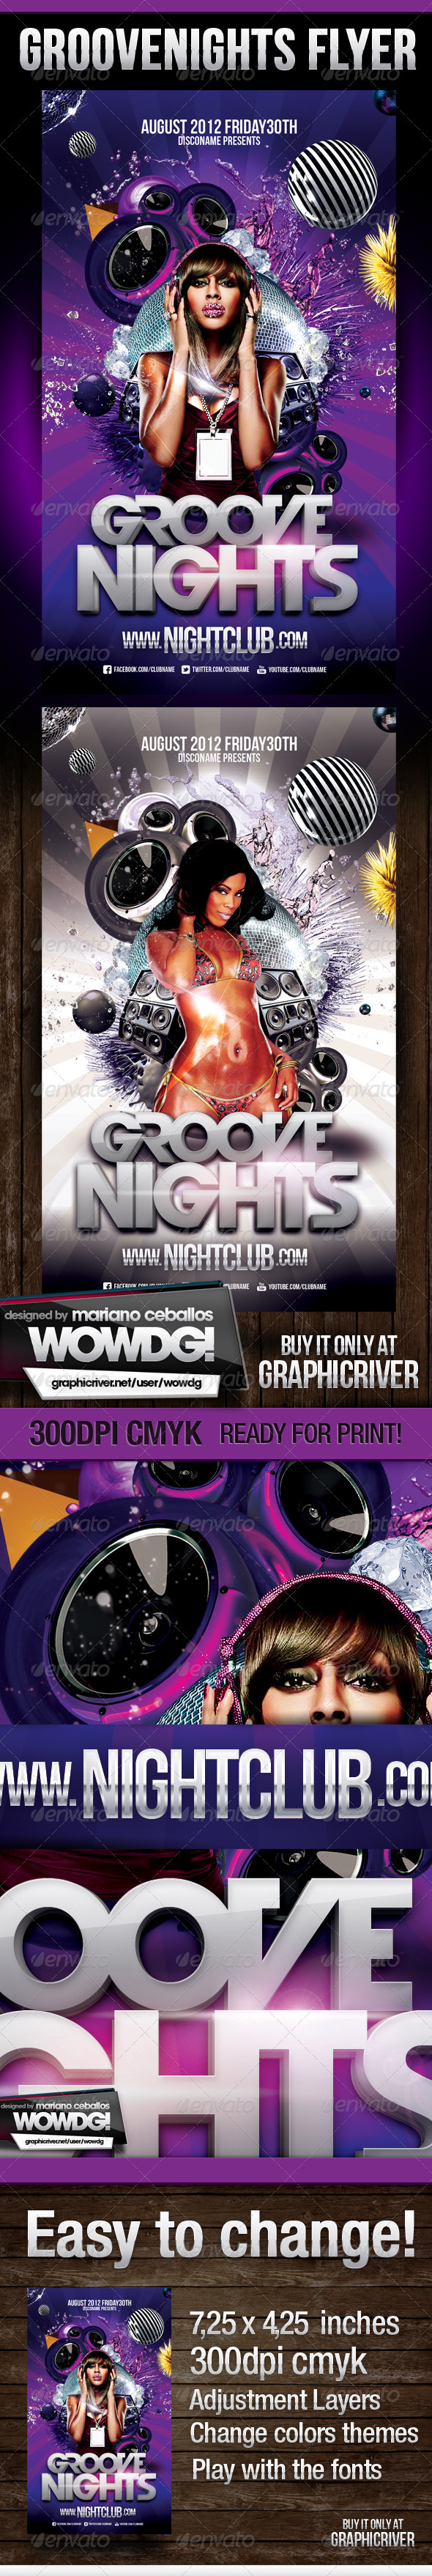 Groove Nights Flyer - Clubs & Parties Events